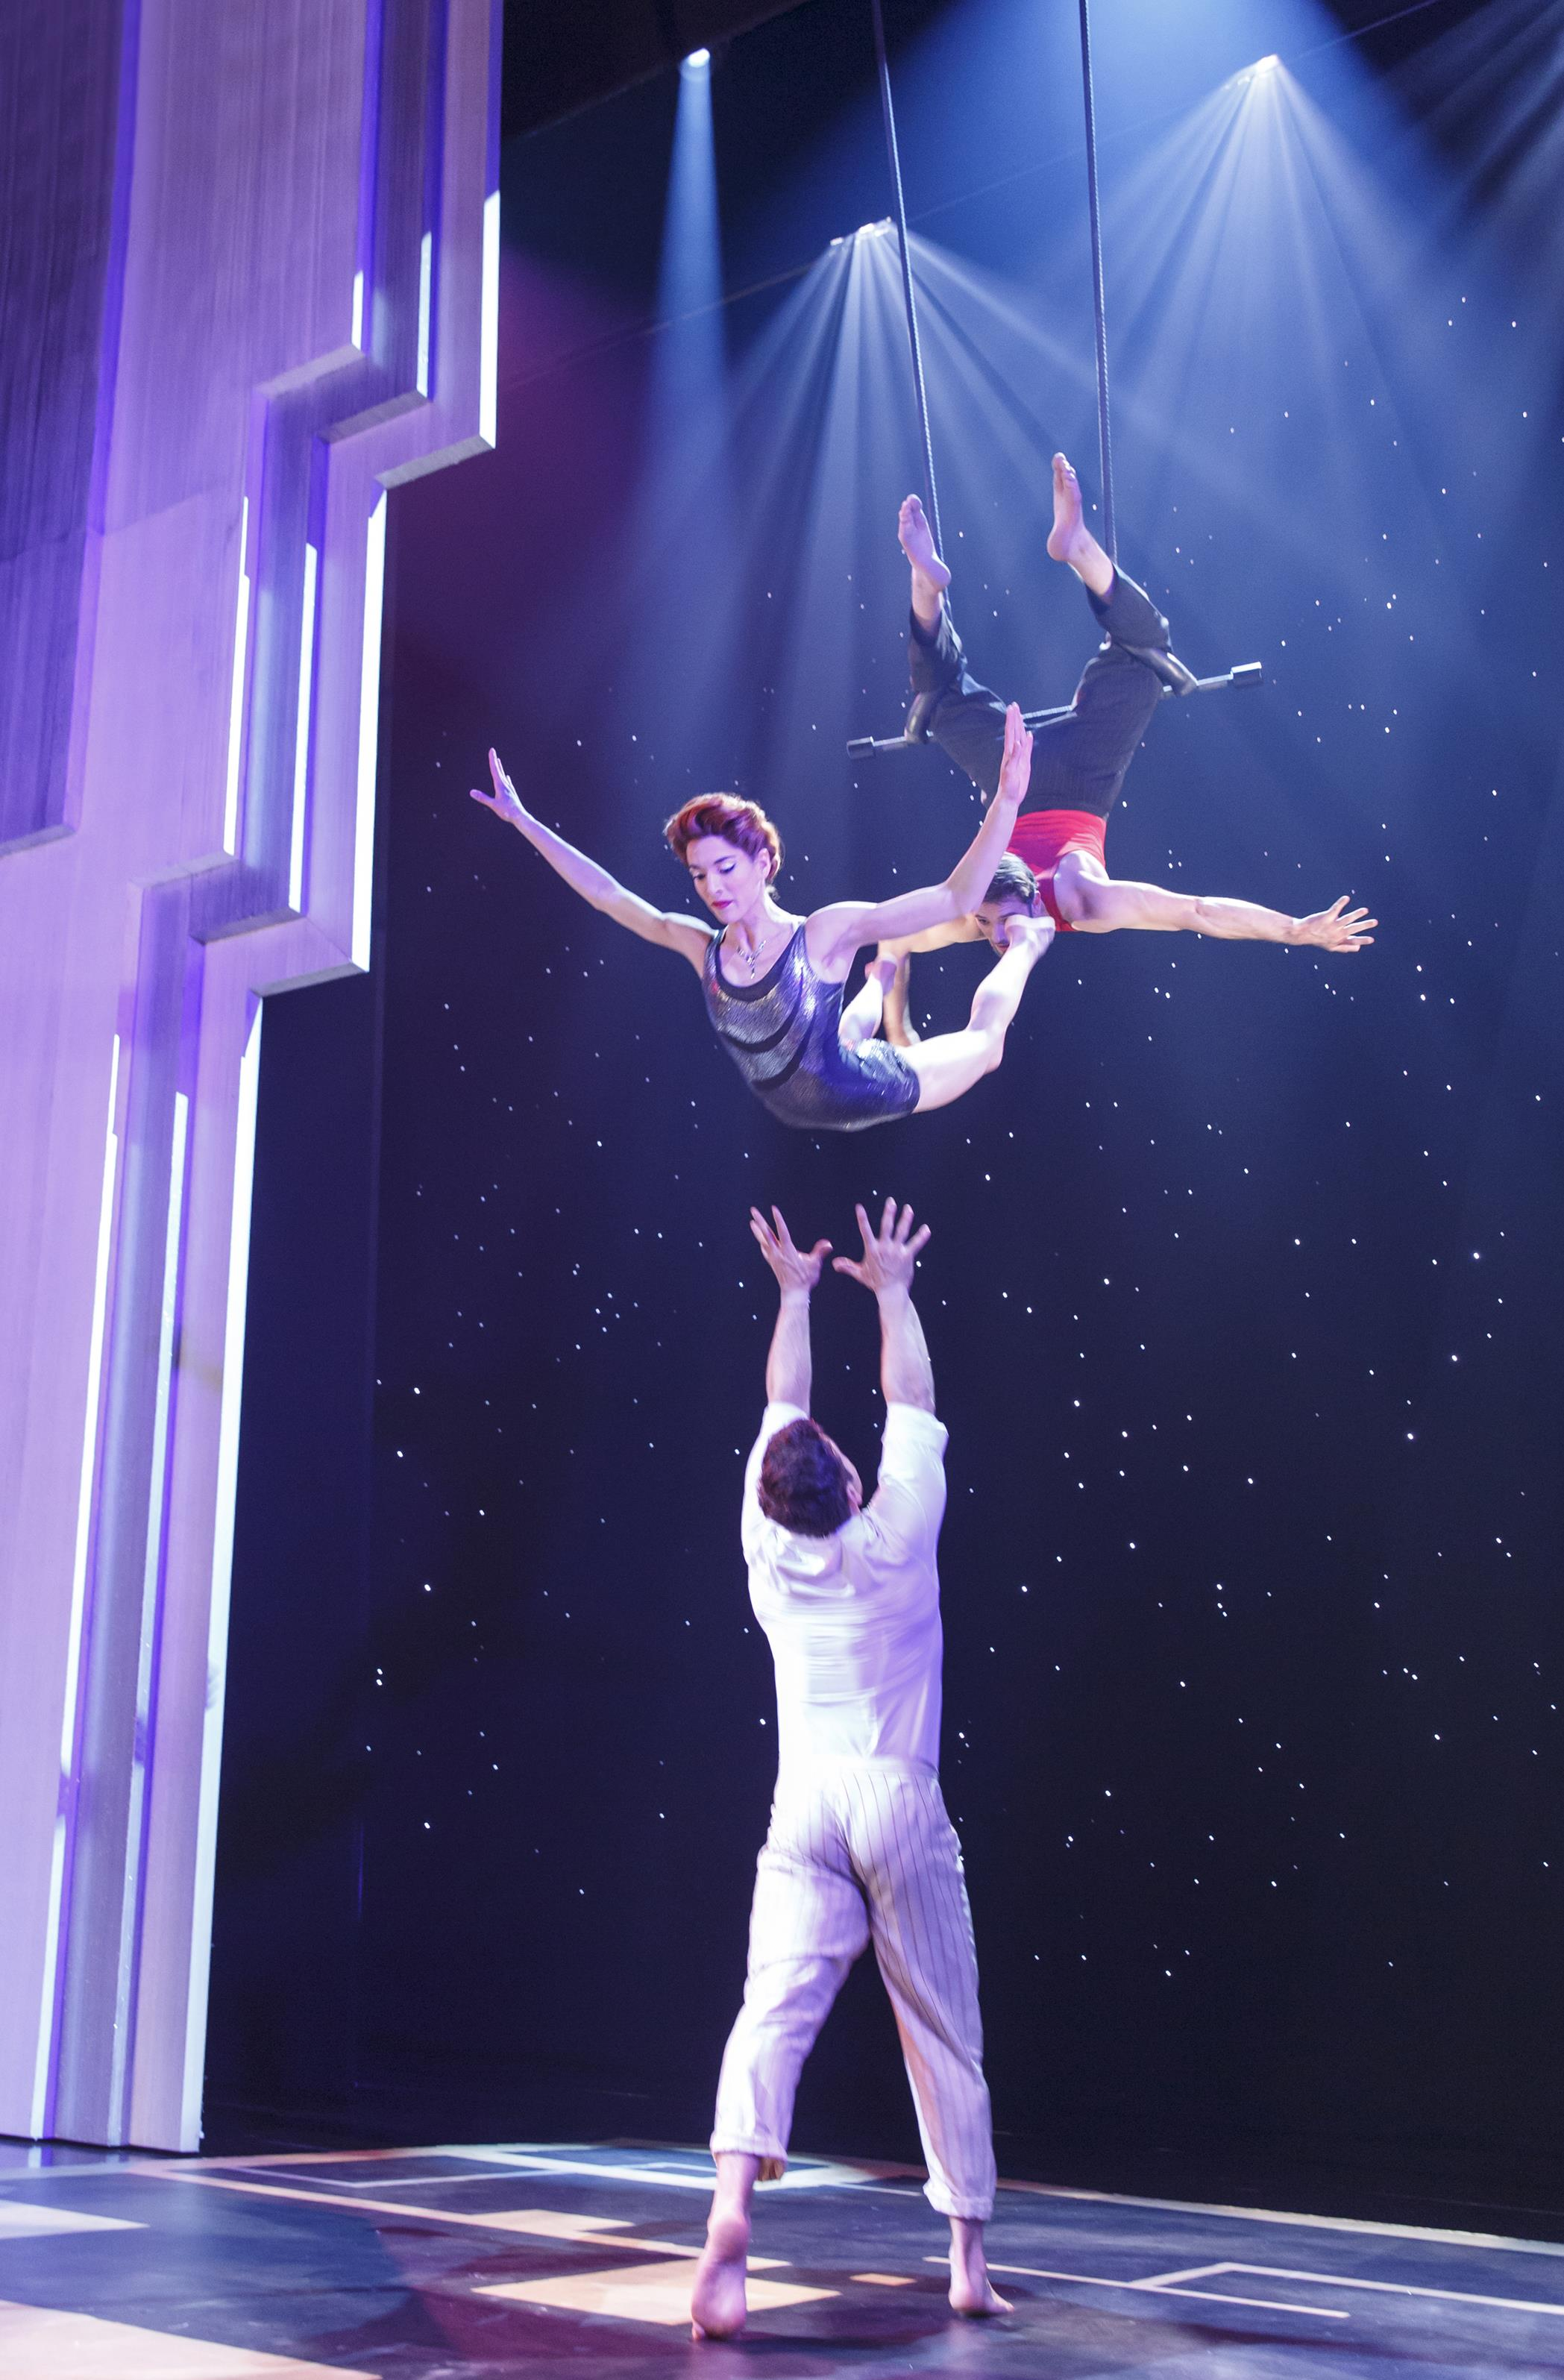 'PARAMOUR': (left to right) Martin Charrat, Myriam Deraiche, Samuel WIlliam Charlton. Photo: